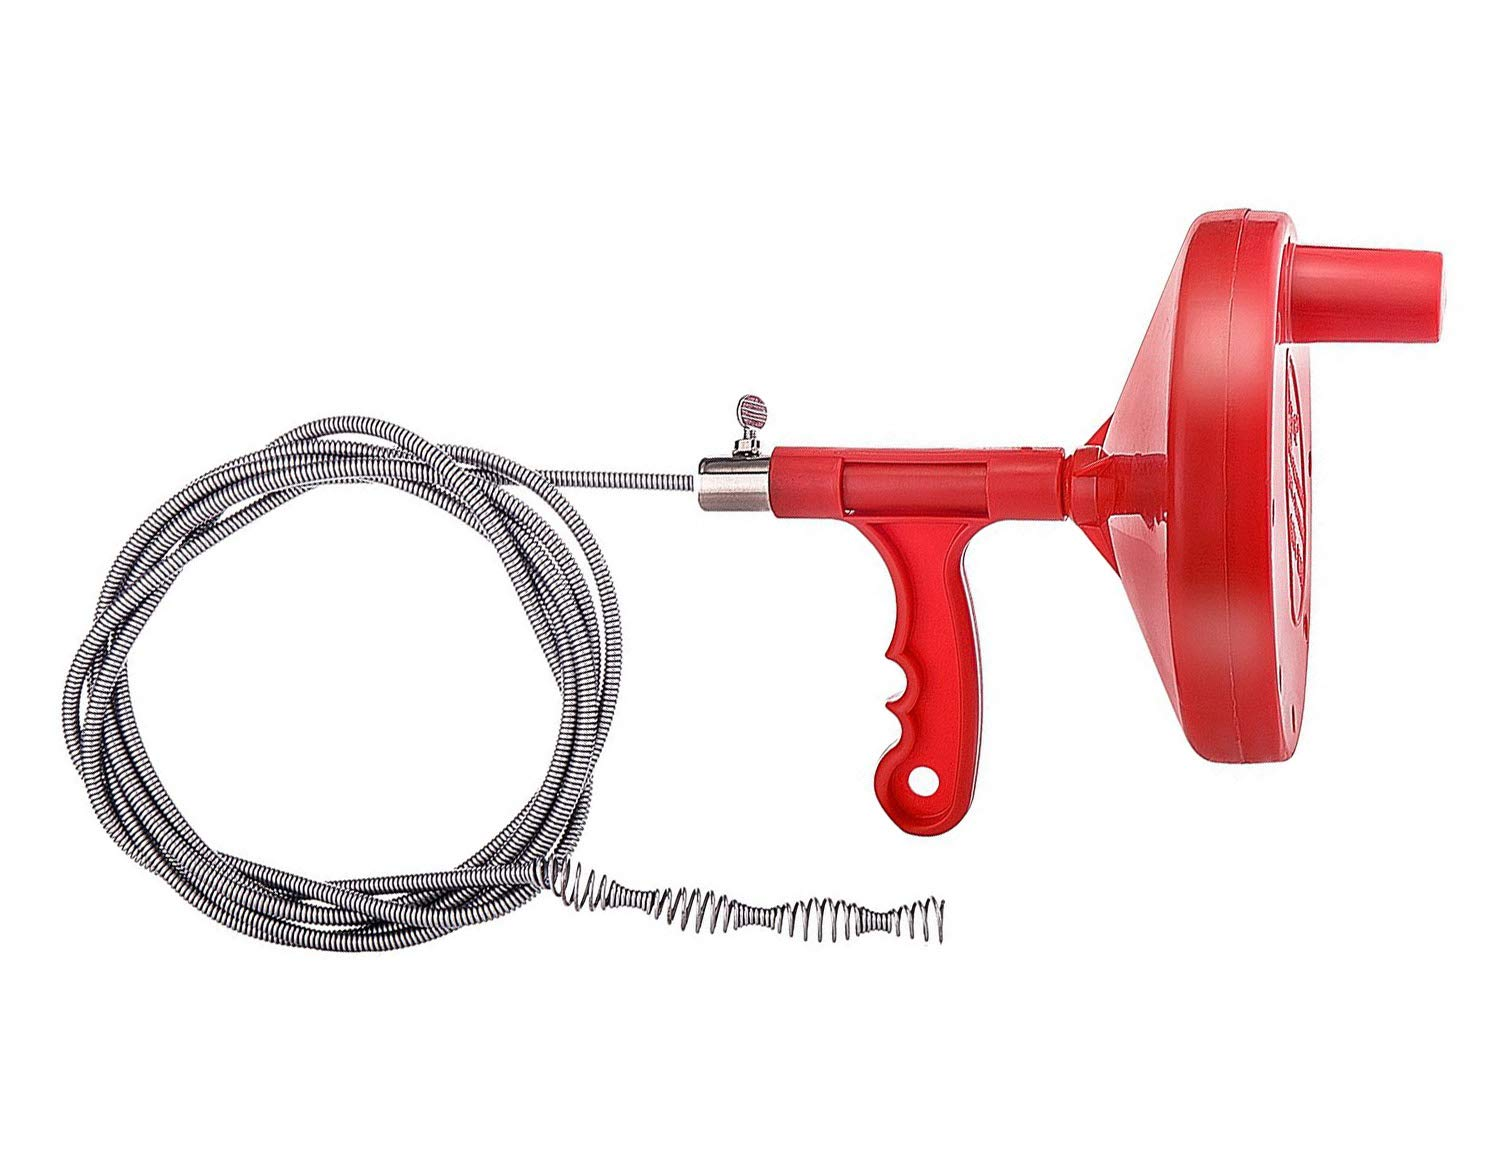 onlyyou Drain Snake, Drain Auger, 1/4-Inch Drain Clog Remover, Tube Drain Cleaning (Red)